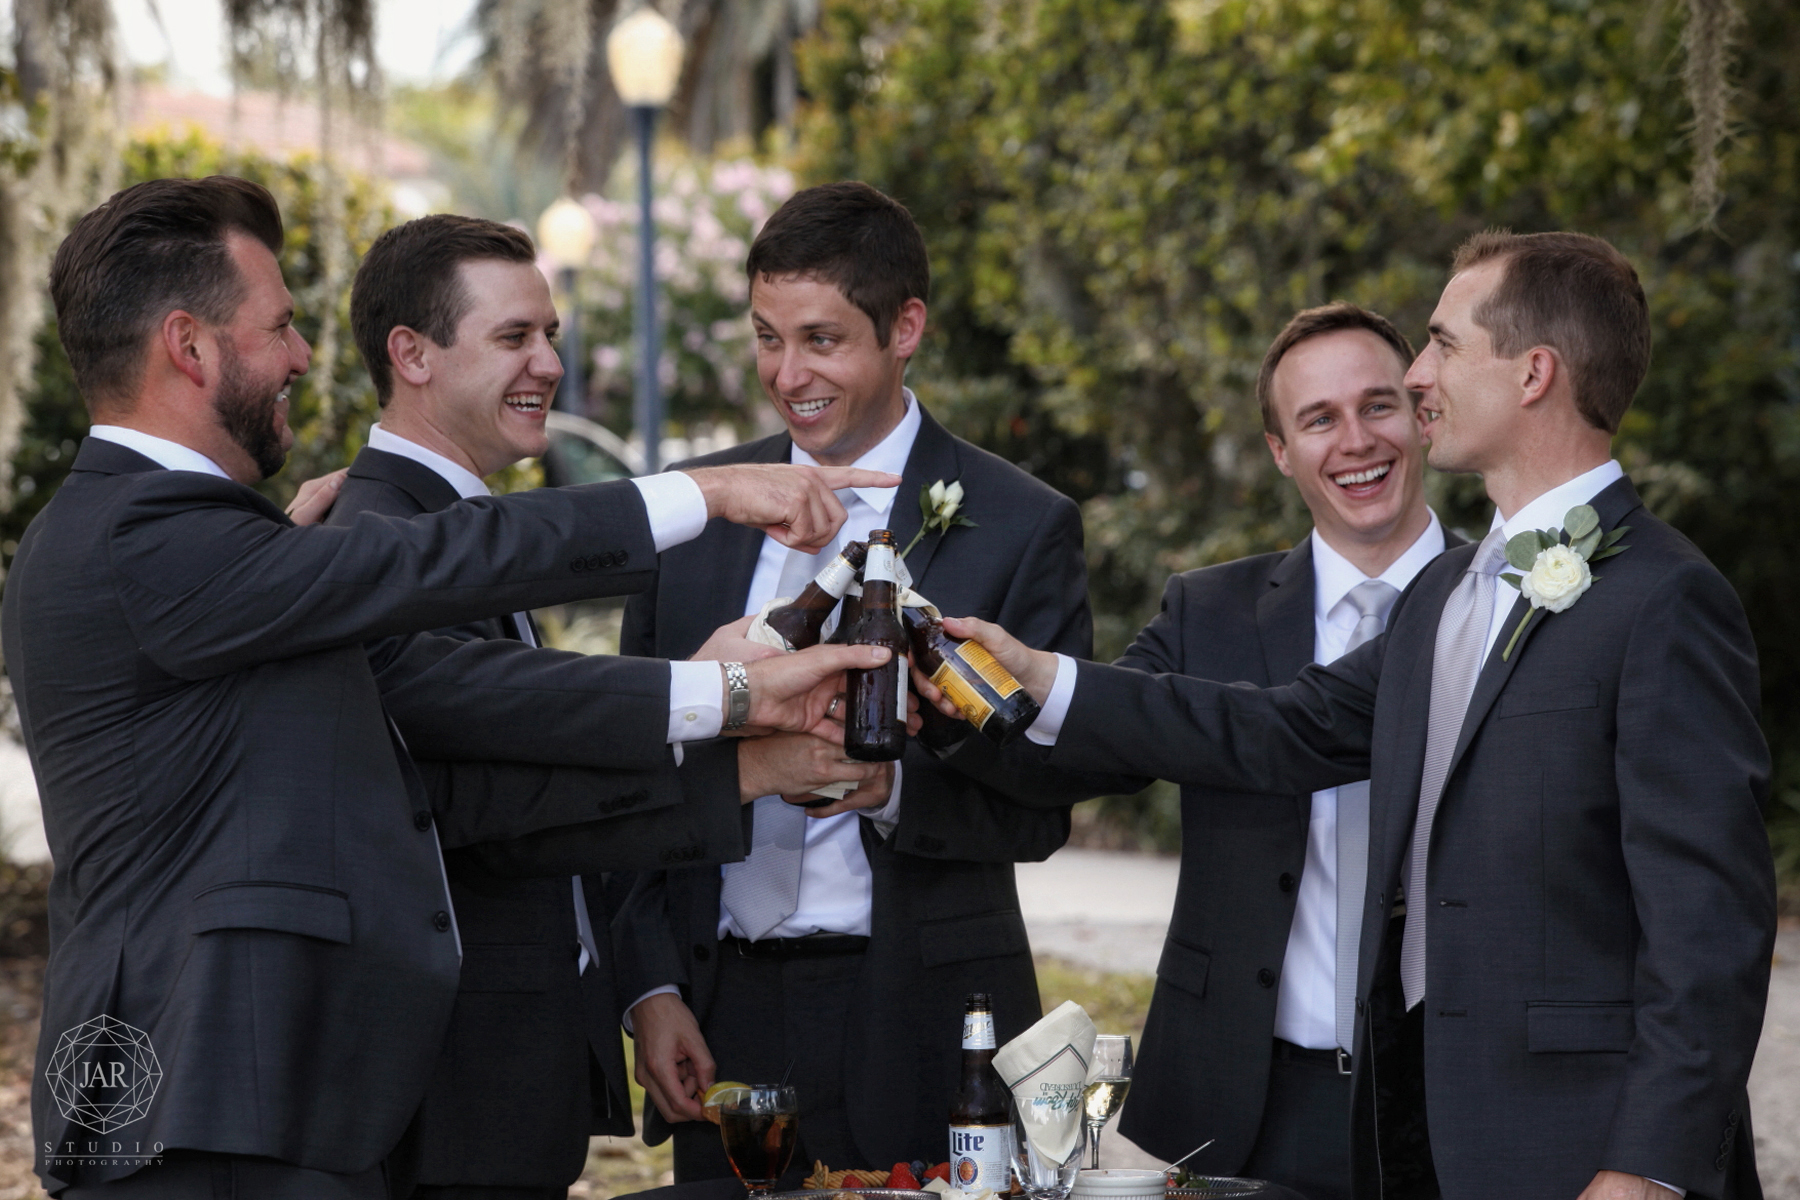 10-groom-and-groomsmen-gray-suits-day-fun-beers-jarstudio-windermere-wedding-photographer.JPG